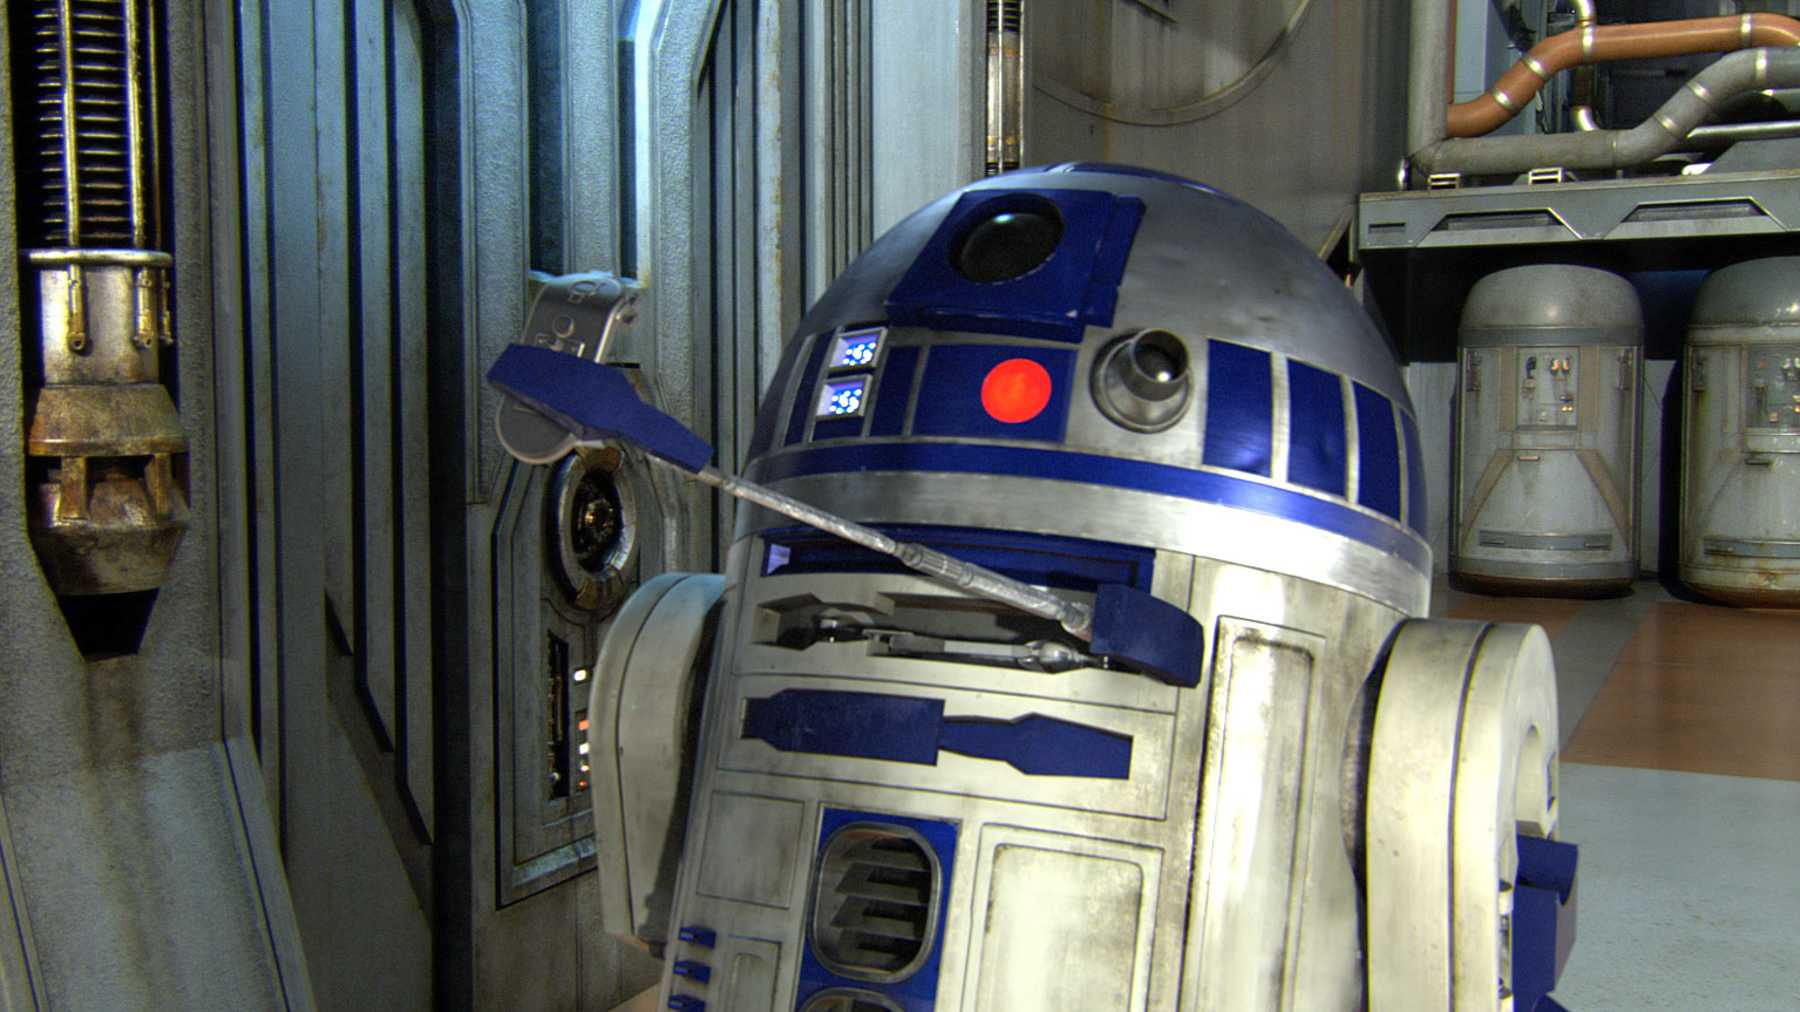 Droid Up Your Dwelling With R2 D2 Shopping Empire